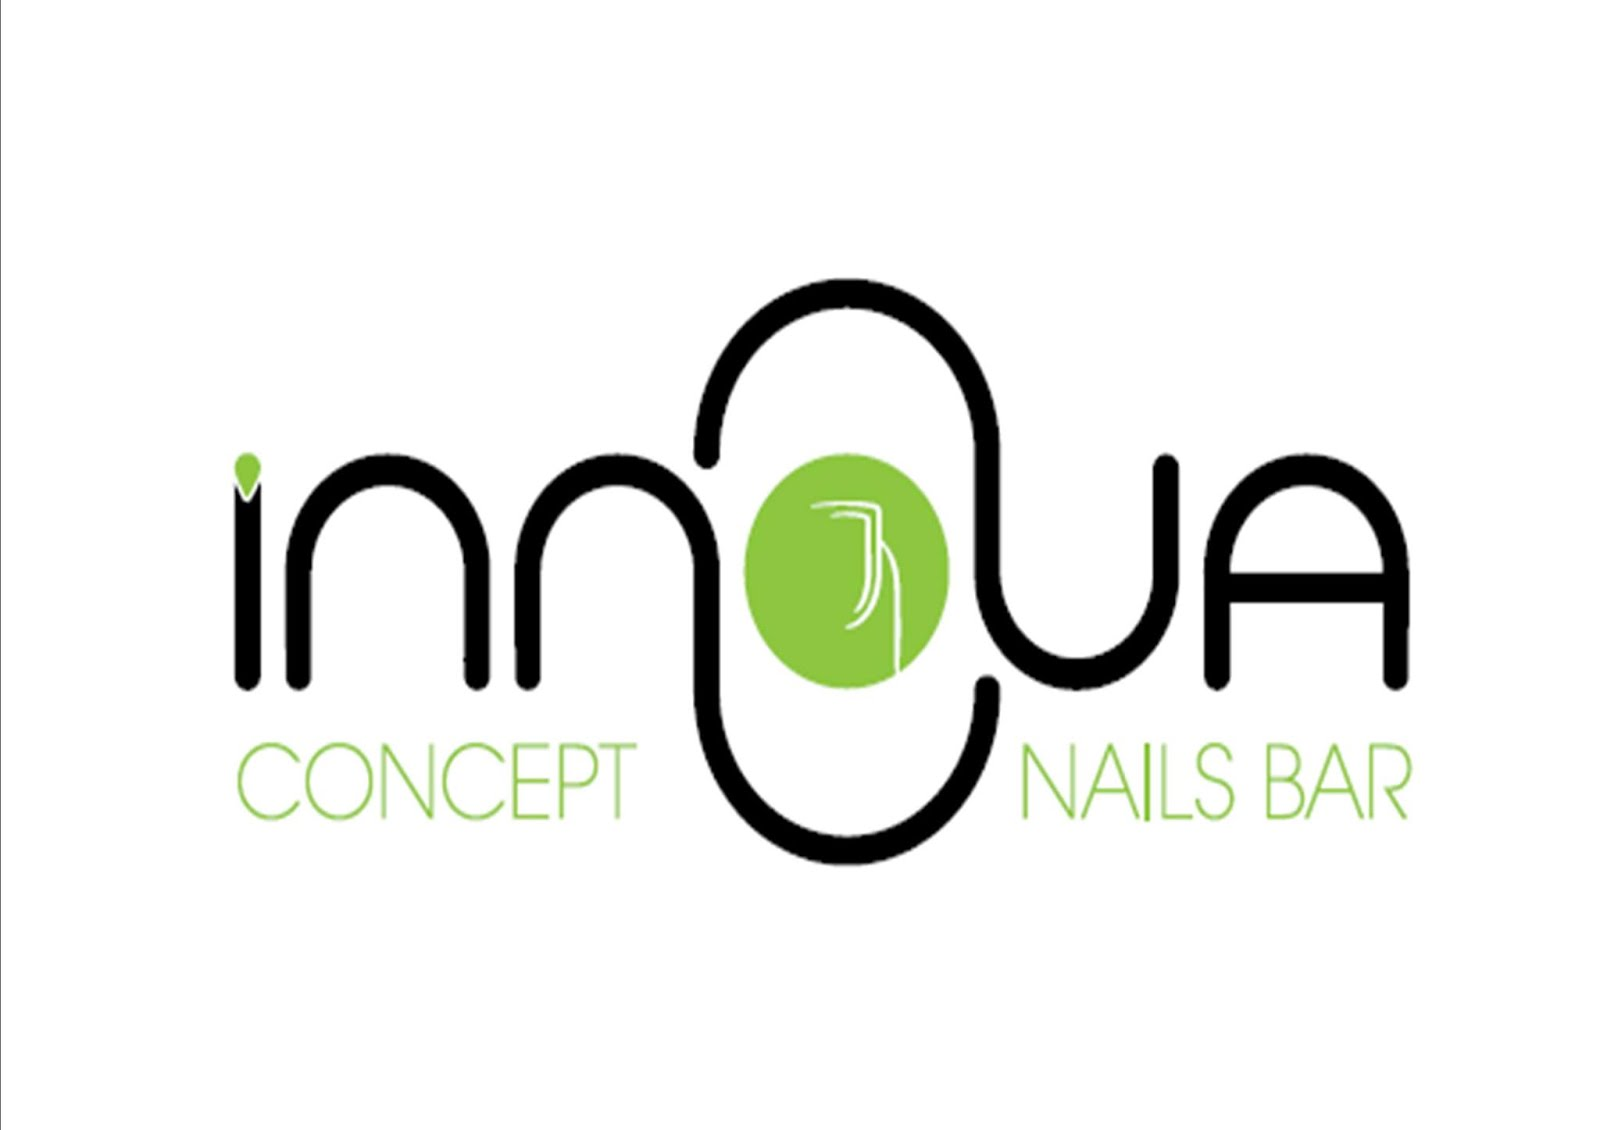 INNOVA CONCEPT NAILS BAR